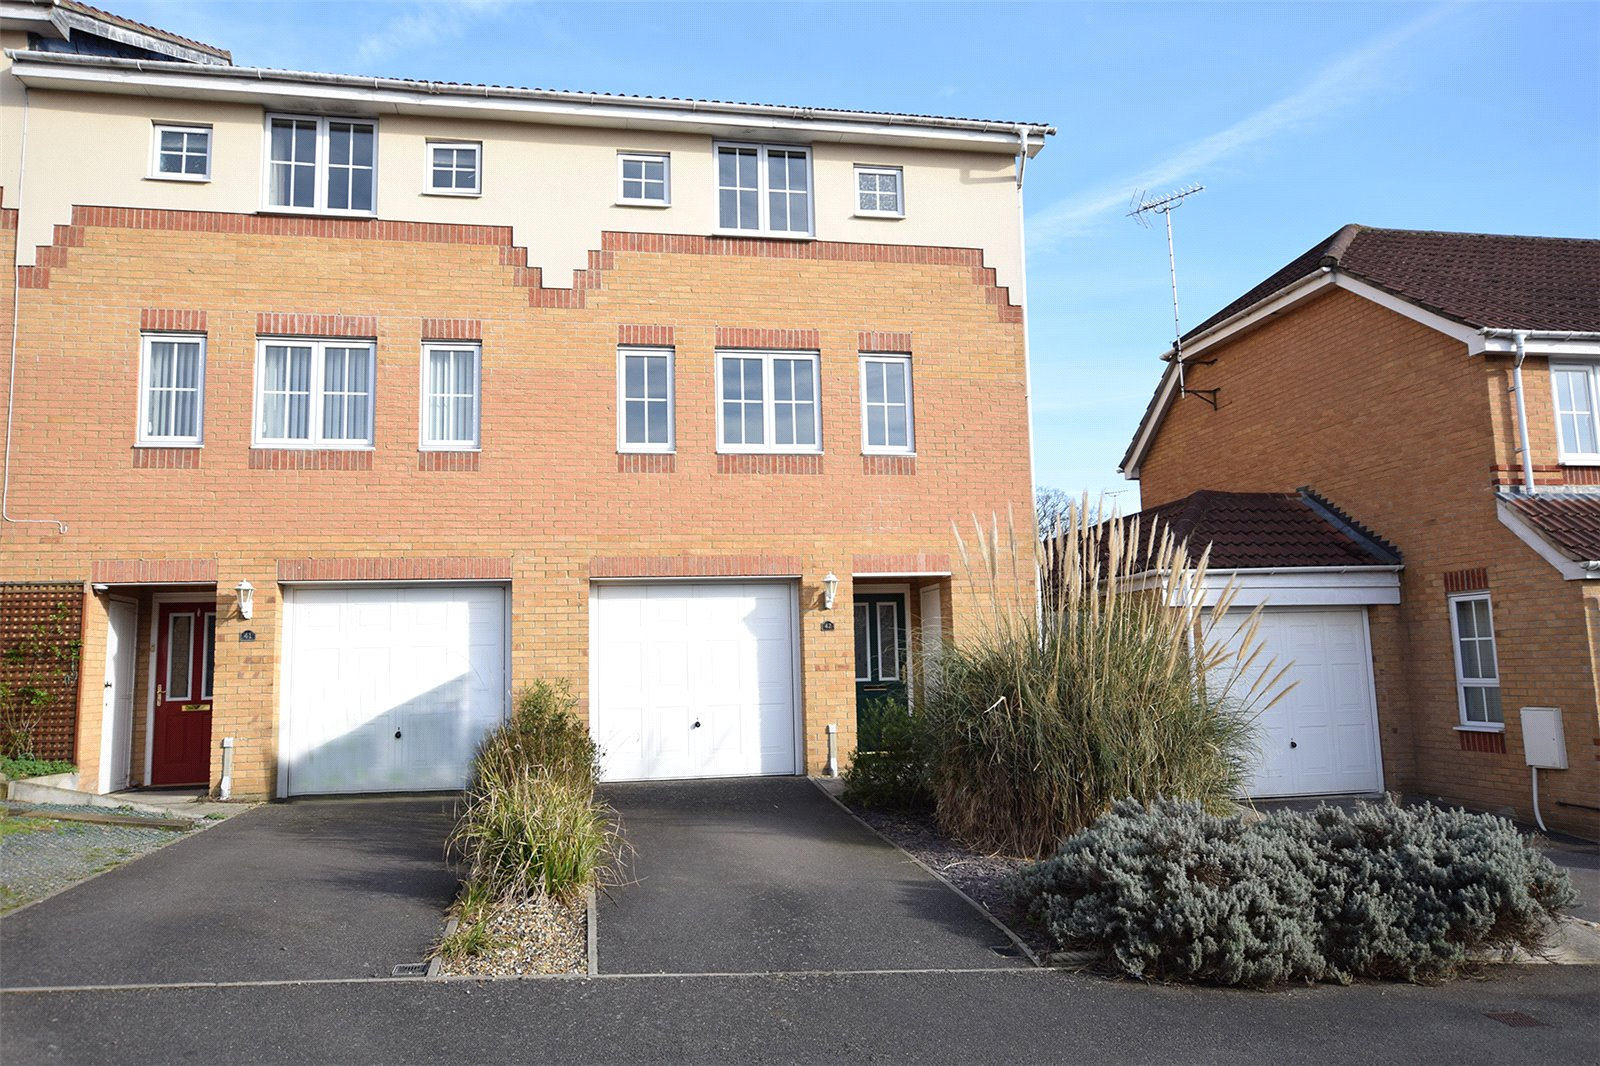 3 Bedrooms End Of Terrace House for sale in Hopper Vale, Bracknell, Berkshire, RG12